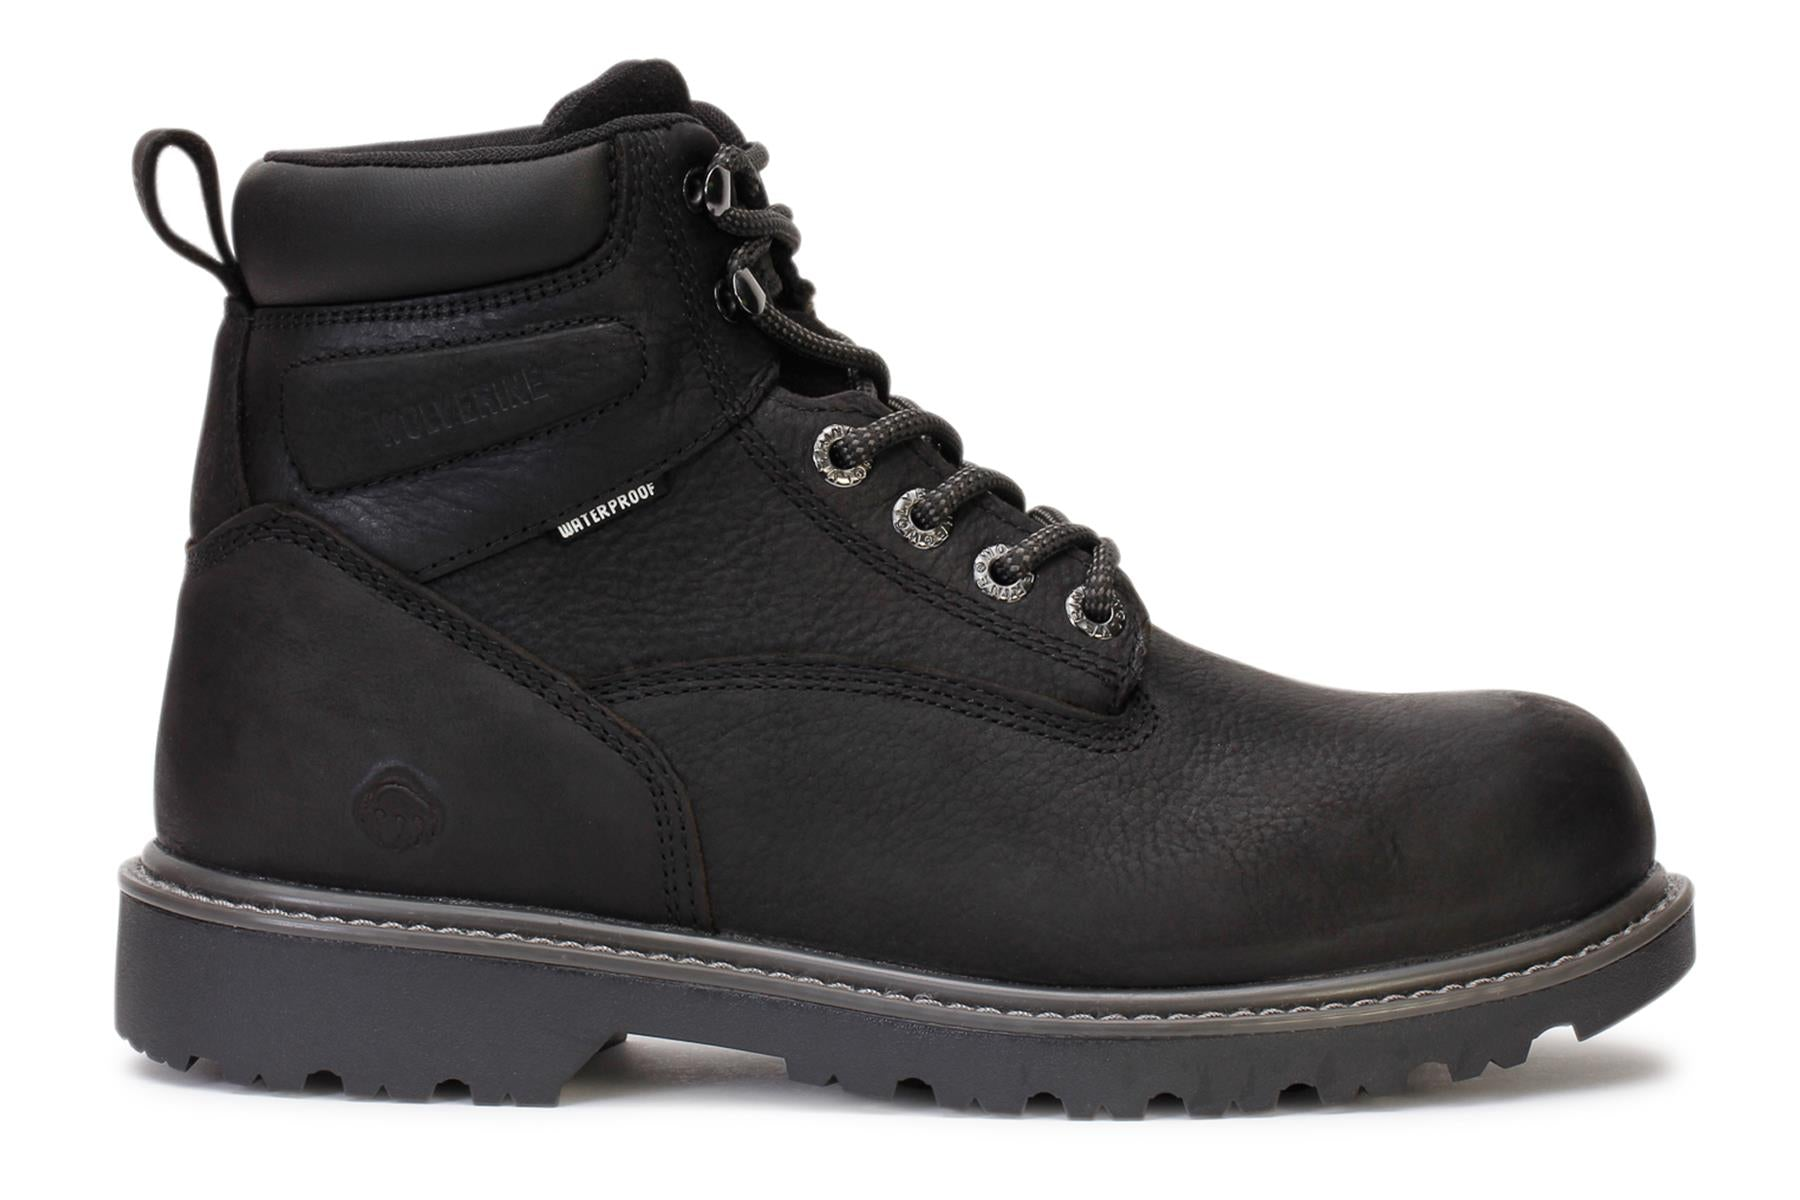 Floorhand Soft Toe Wolverine Work Boots